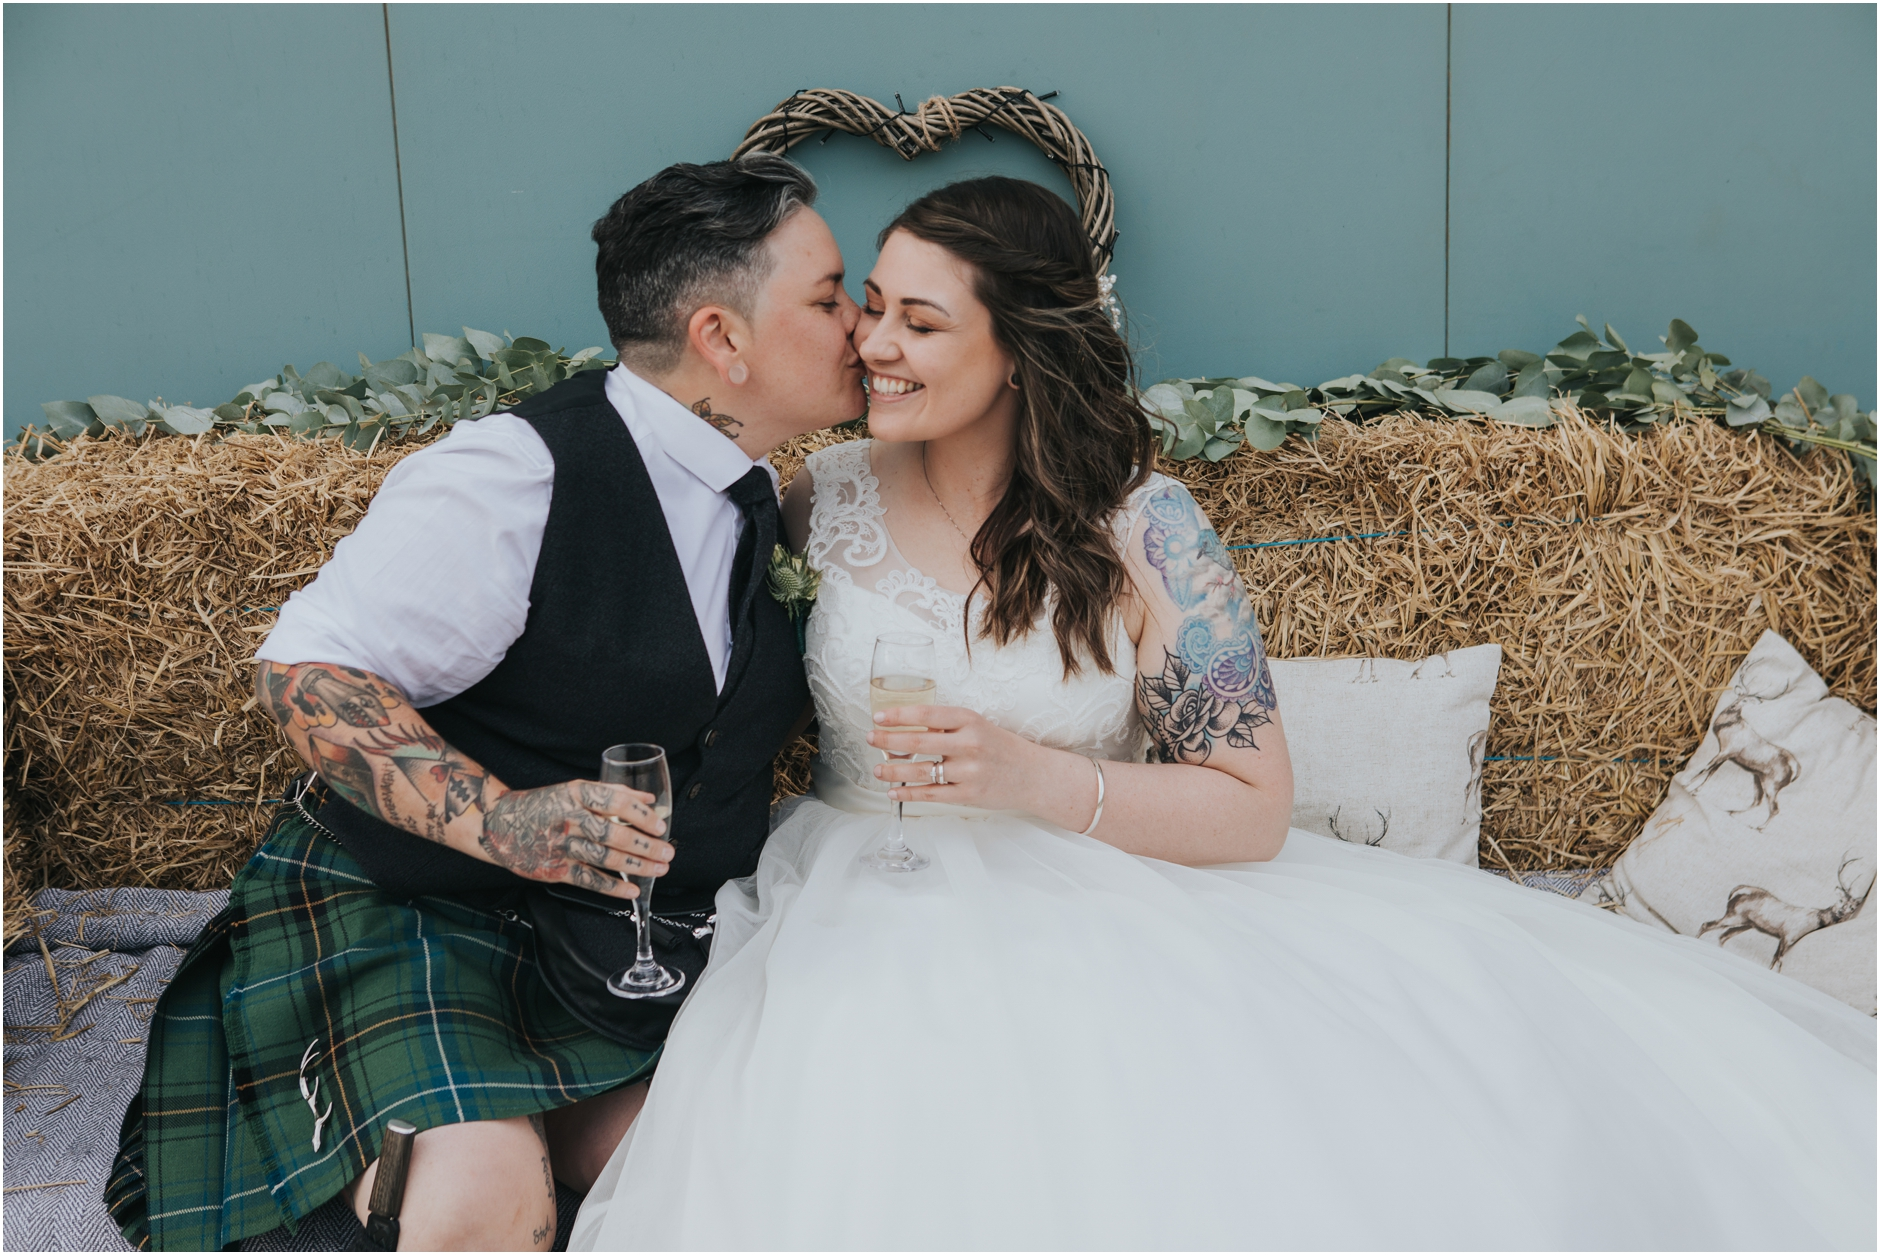 same sex wedding photographer gay wedding scotland edinburgh